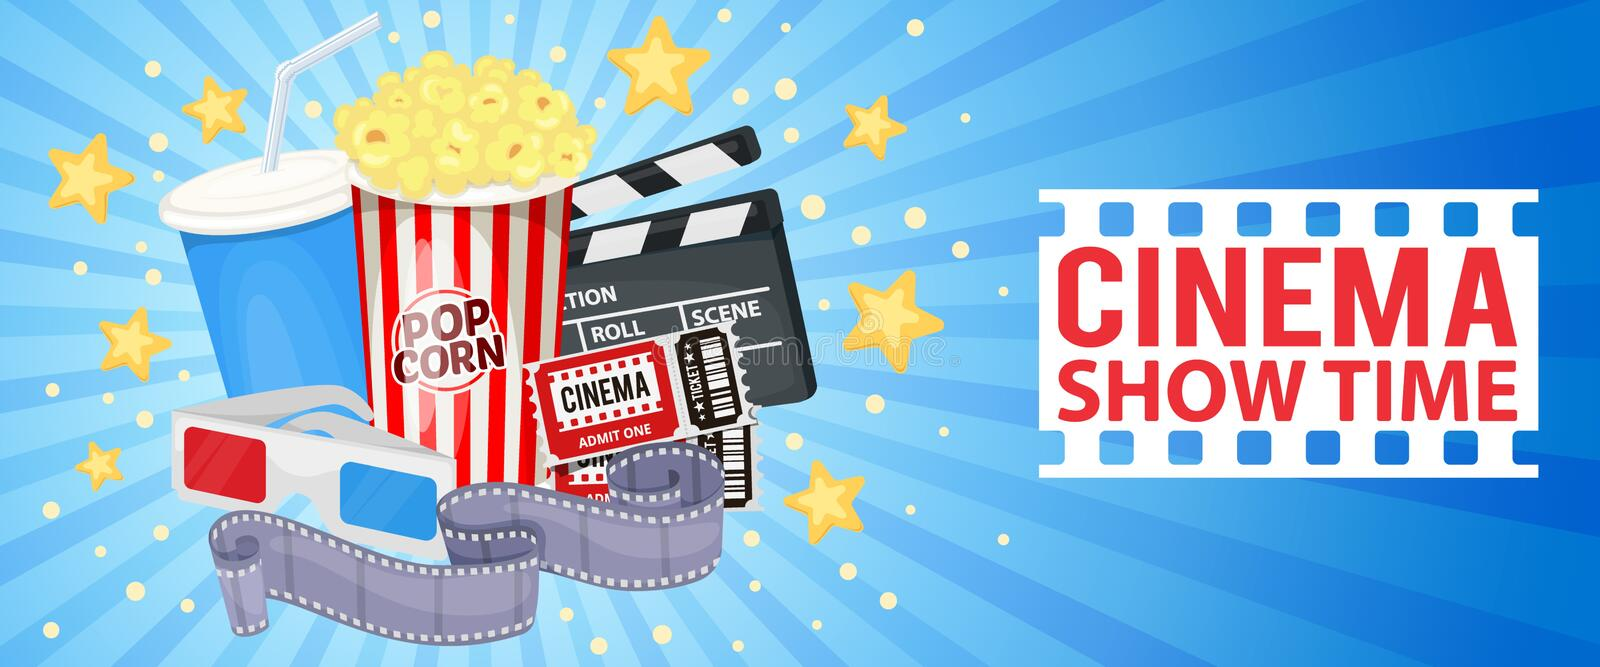 Cinema icons set. Horizontal banner with cinema icons - clapper board, film reel, popcorn, cola, tickets and 3D glasses. Vector royalty free illustration